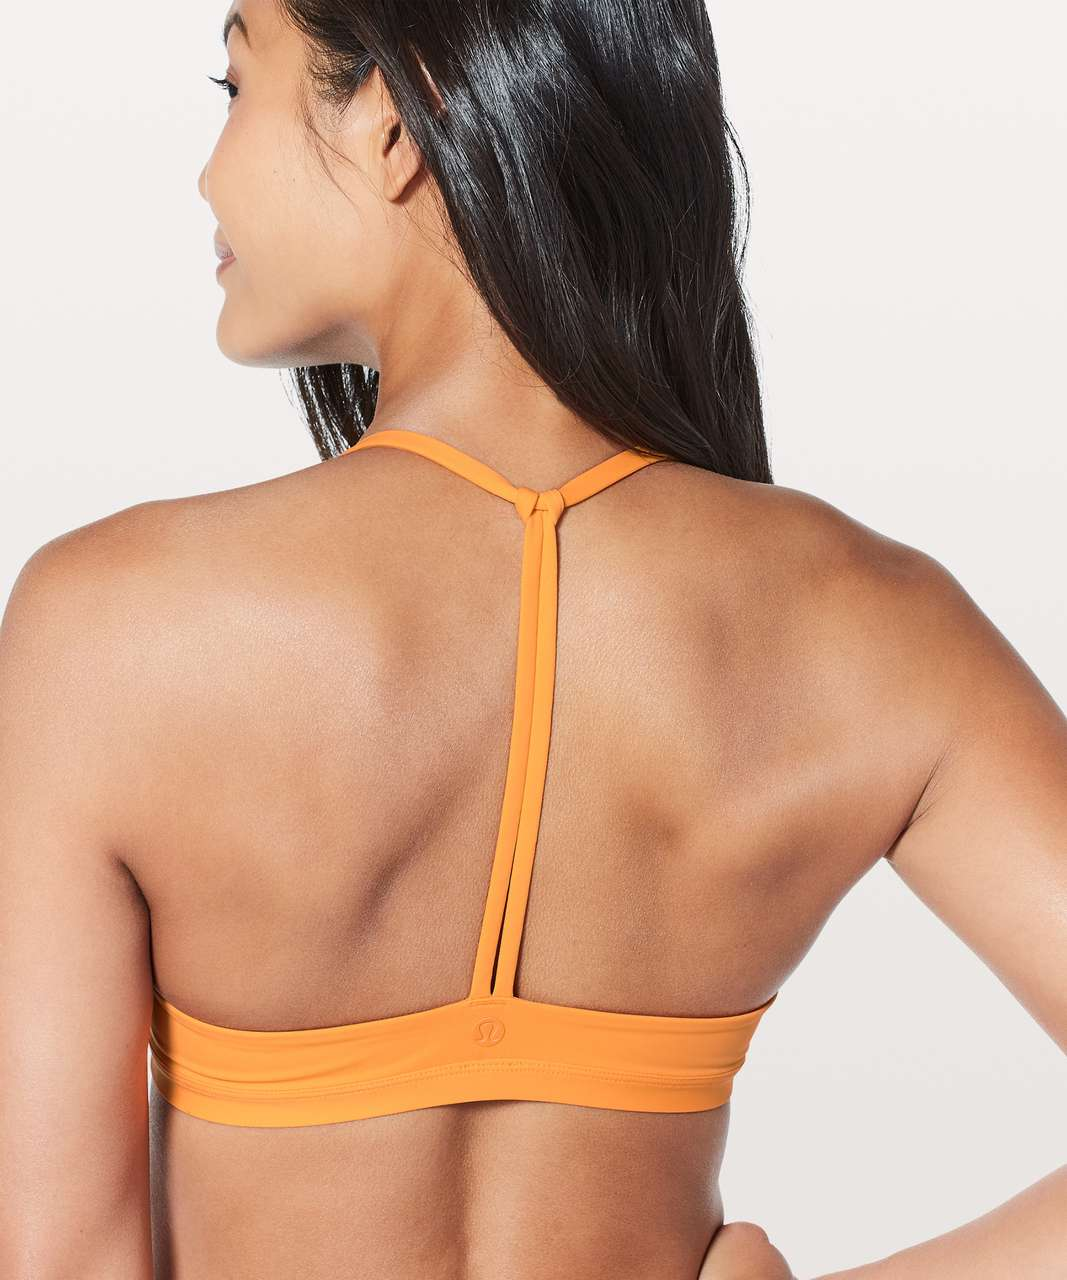 Lululemon Deep Sea Top - Vivid Amber